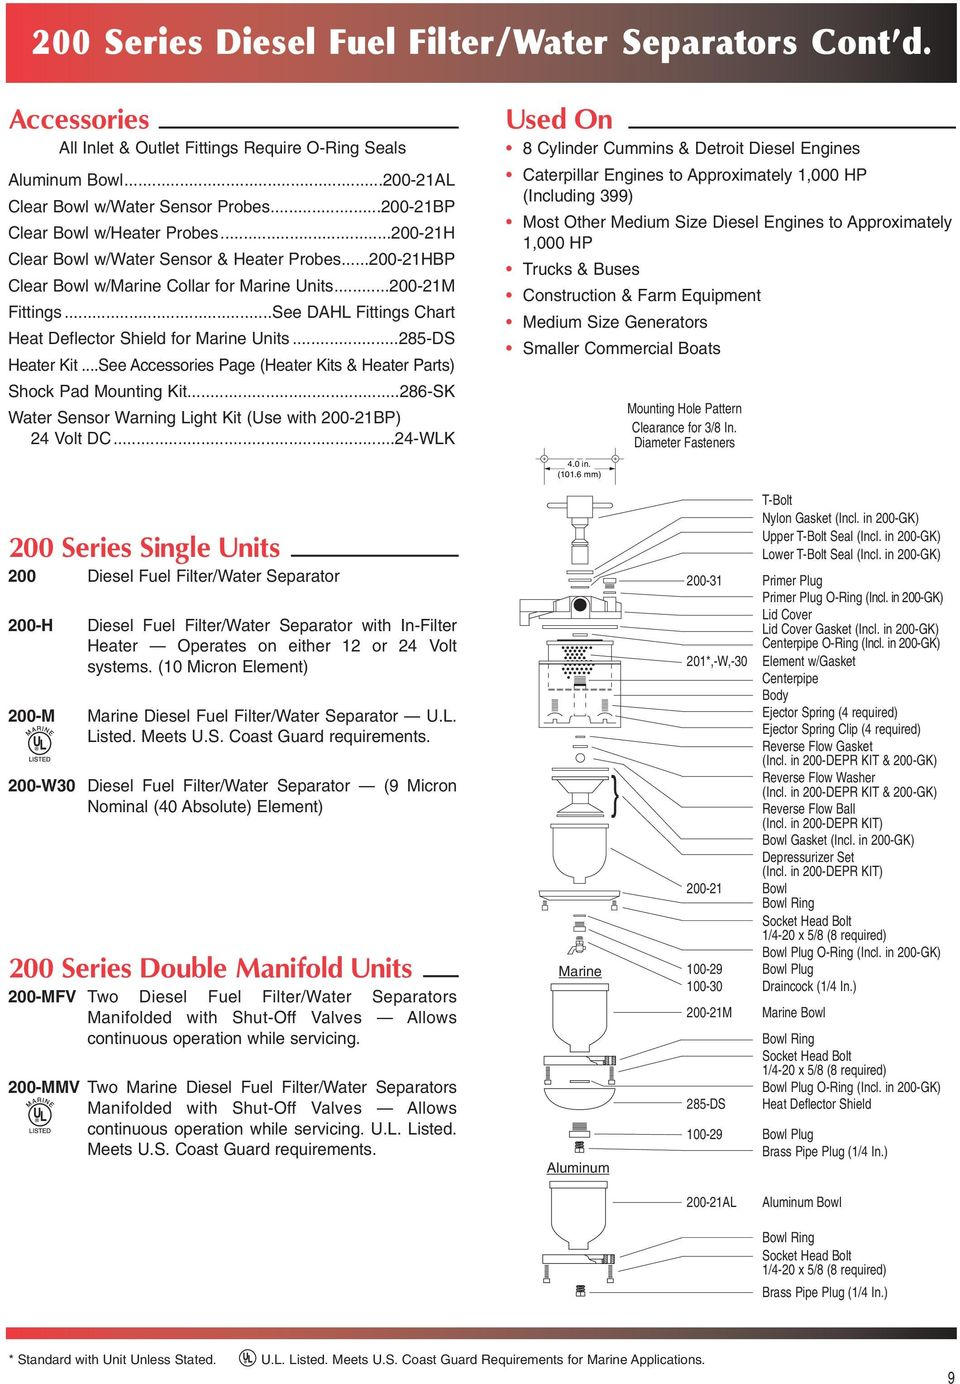 Diesel Fuel Filter Water Separators Recycler Systems Pdf Truck Micron See Dahl Fittings Chart Heat Deflector Shield For Marine Units285